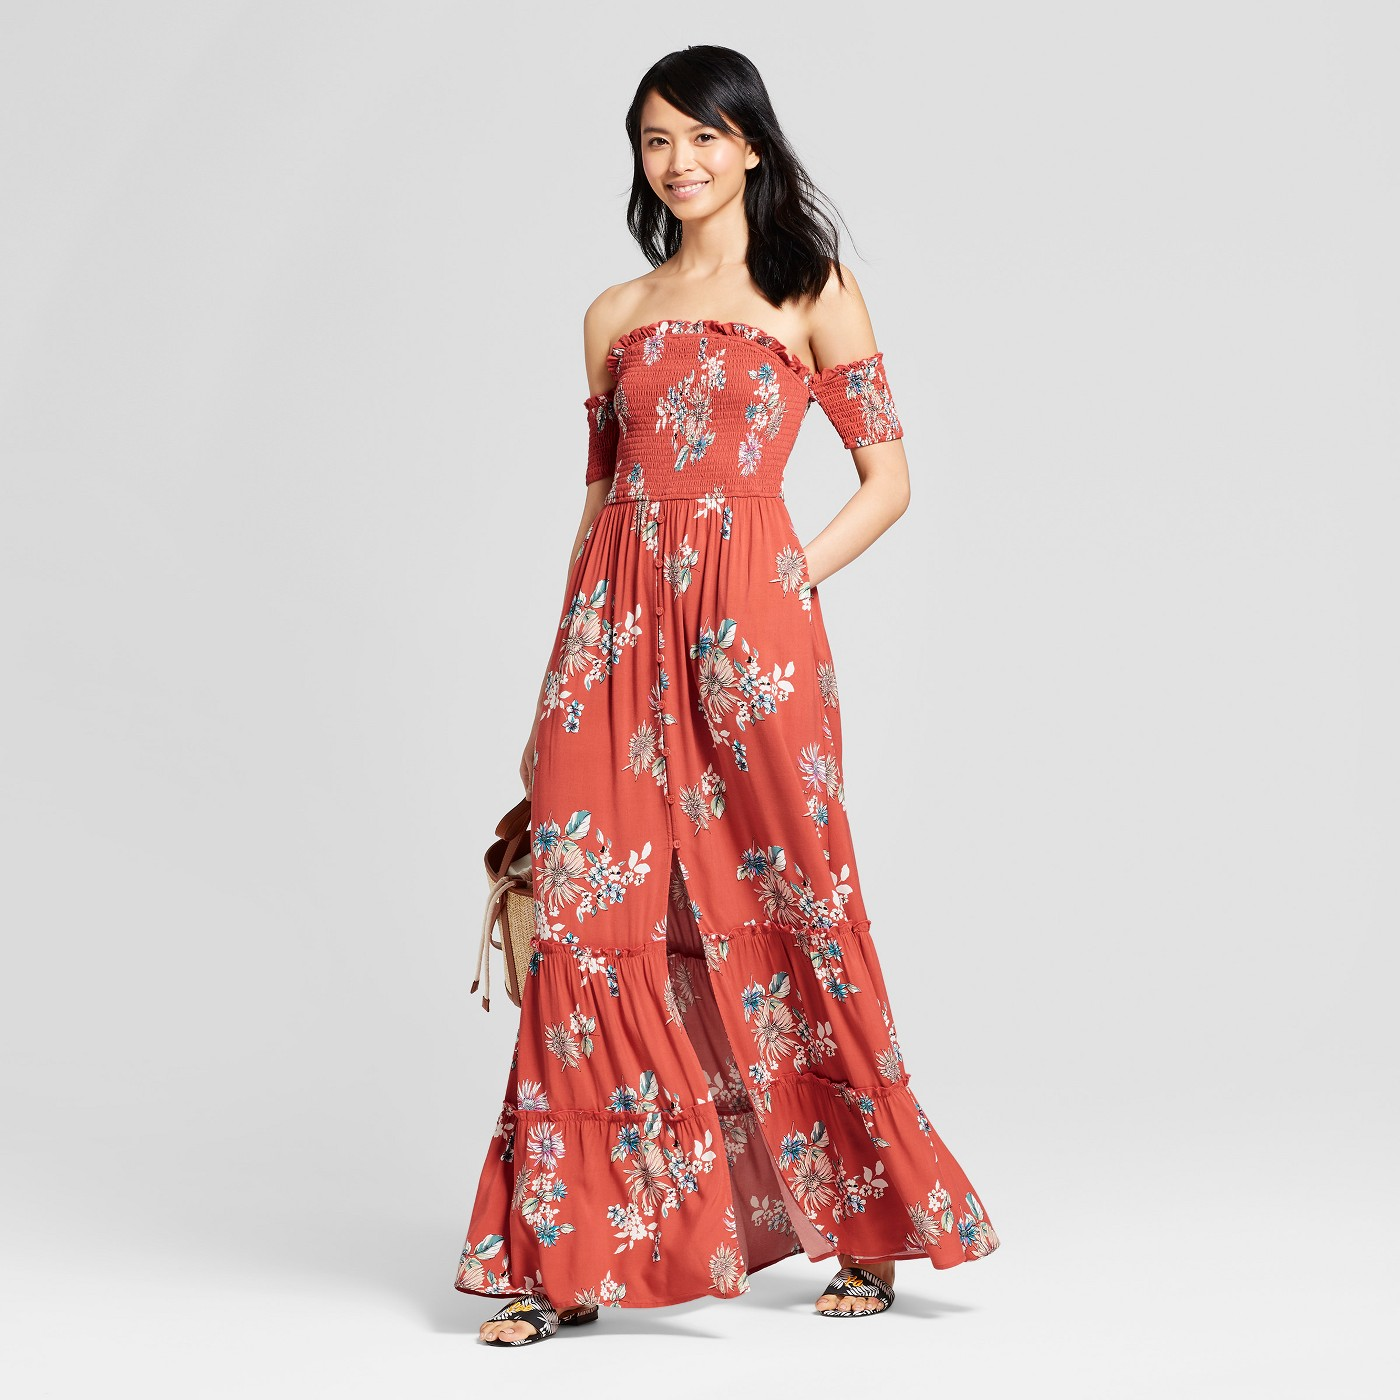 - I love dresses that have extra detail, like it's off shoulder, and ruffle/button detail on the bottom